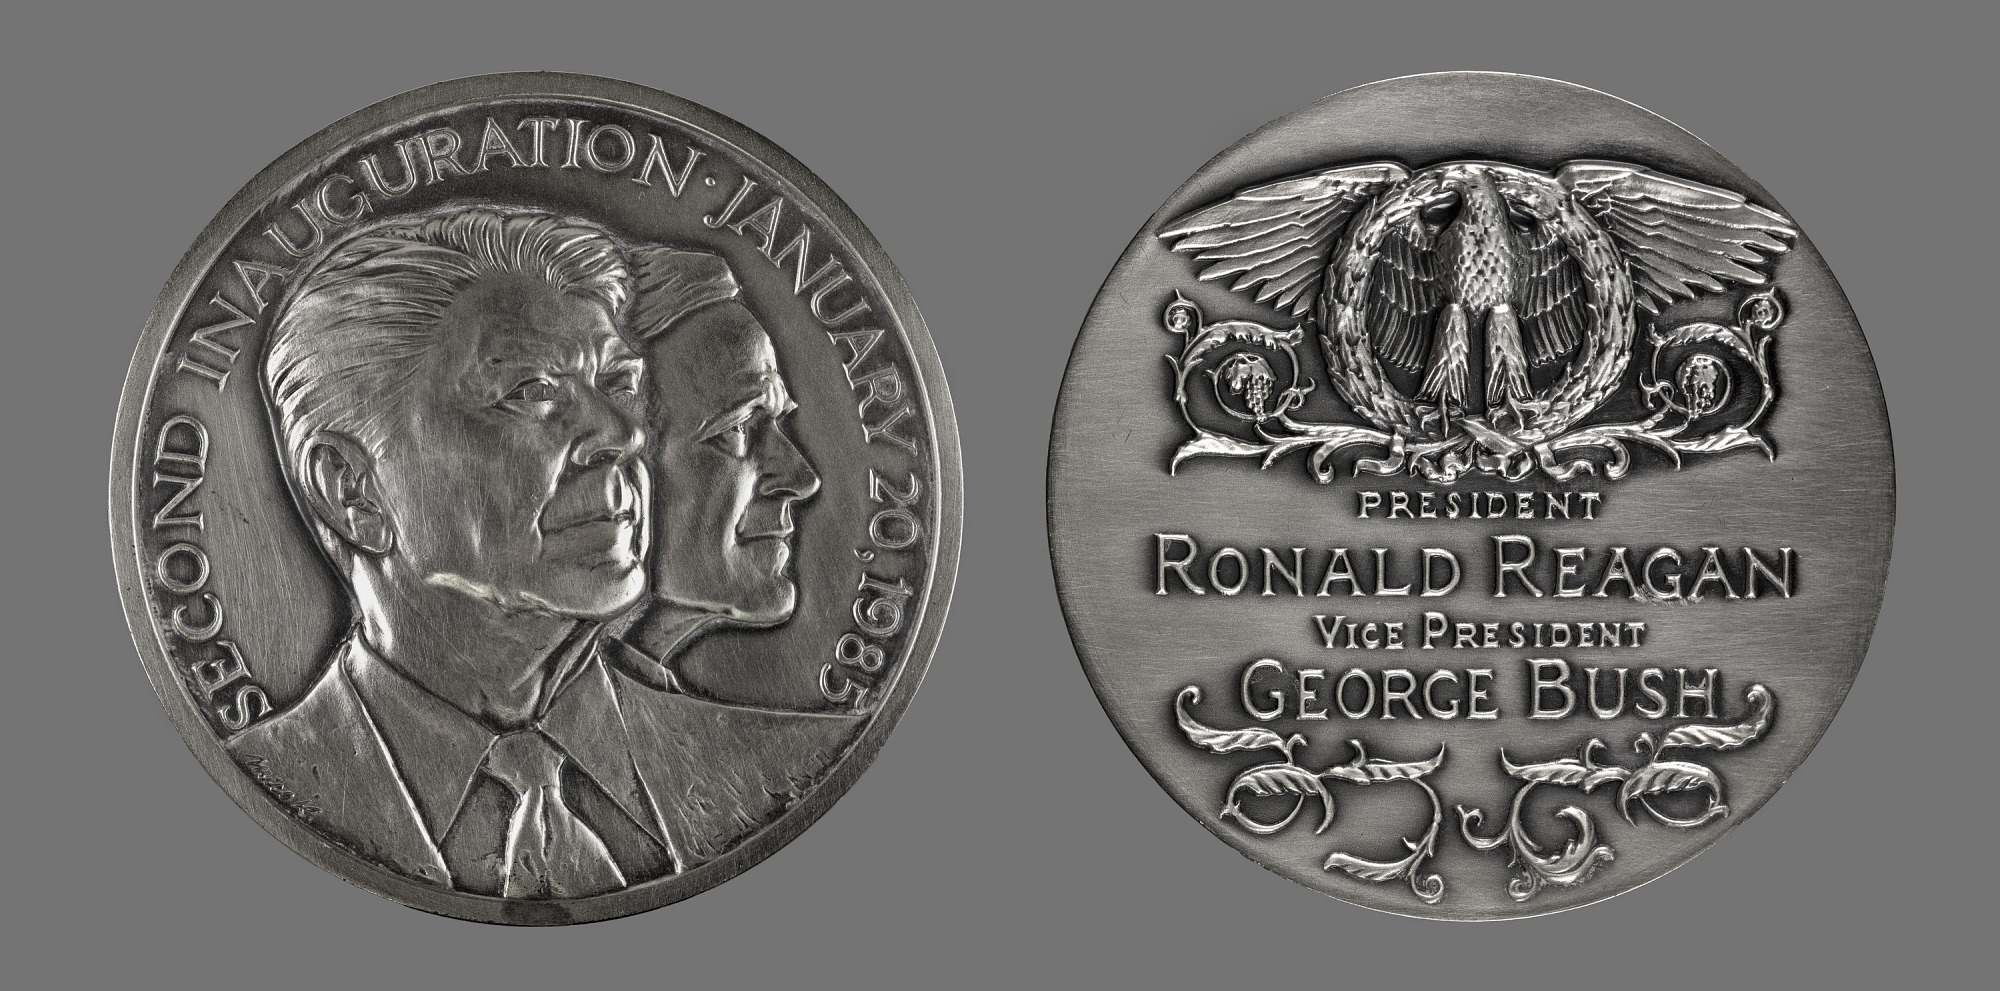 Ronald Reagan and George H. W. Bush Presidential Inaugural Medal